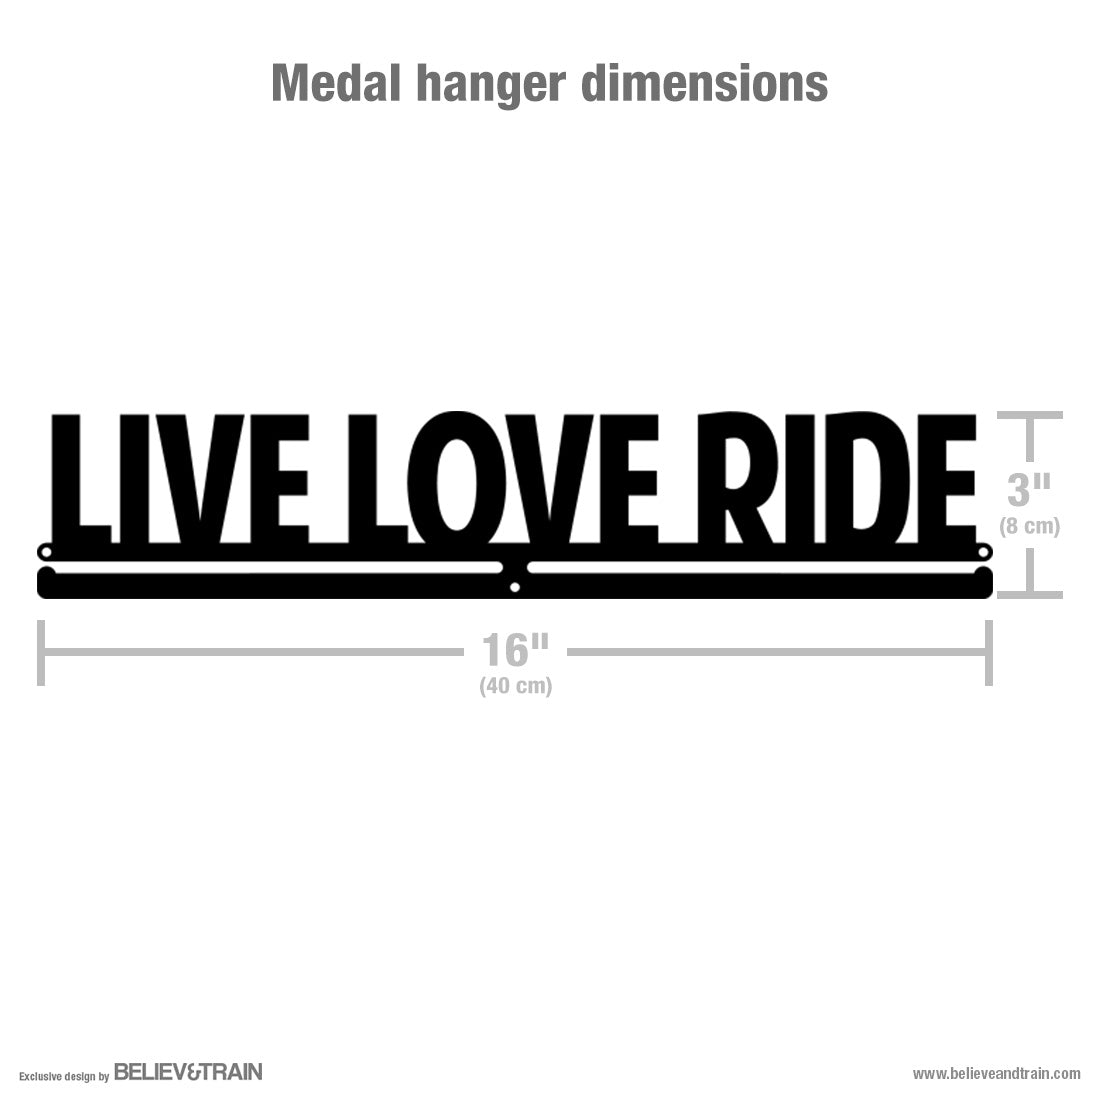 Live Love Ride- Cycling Medal Hanger